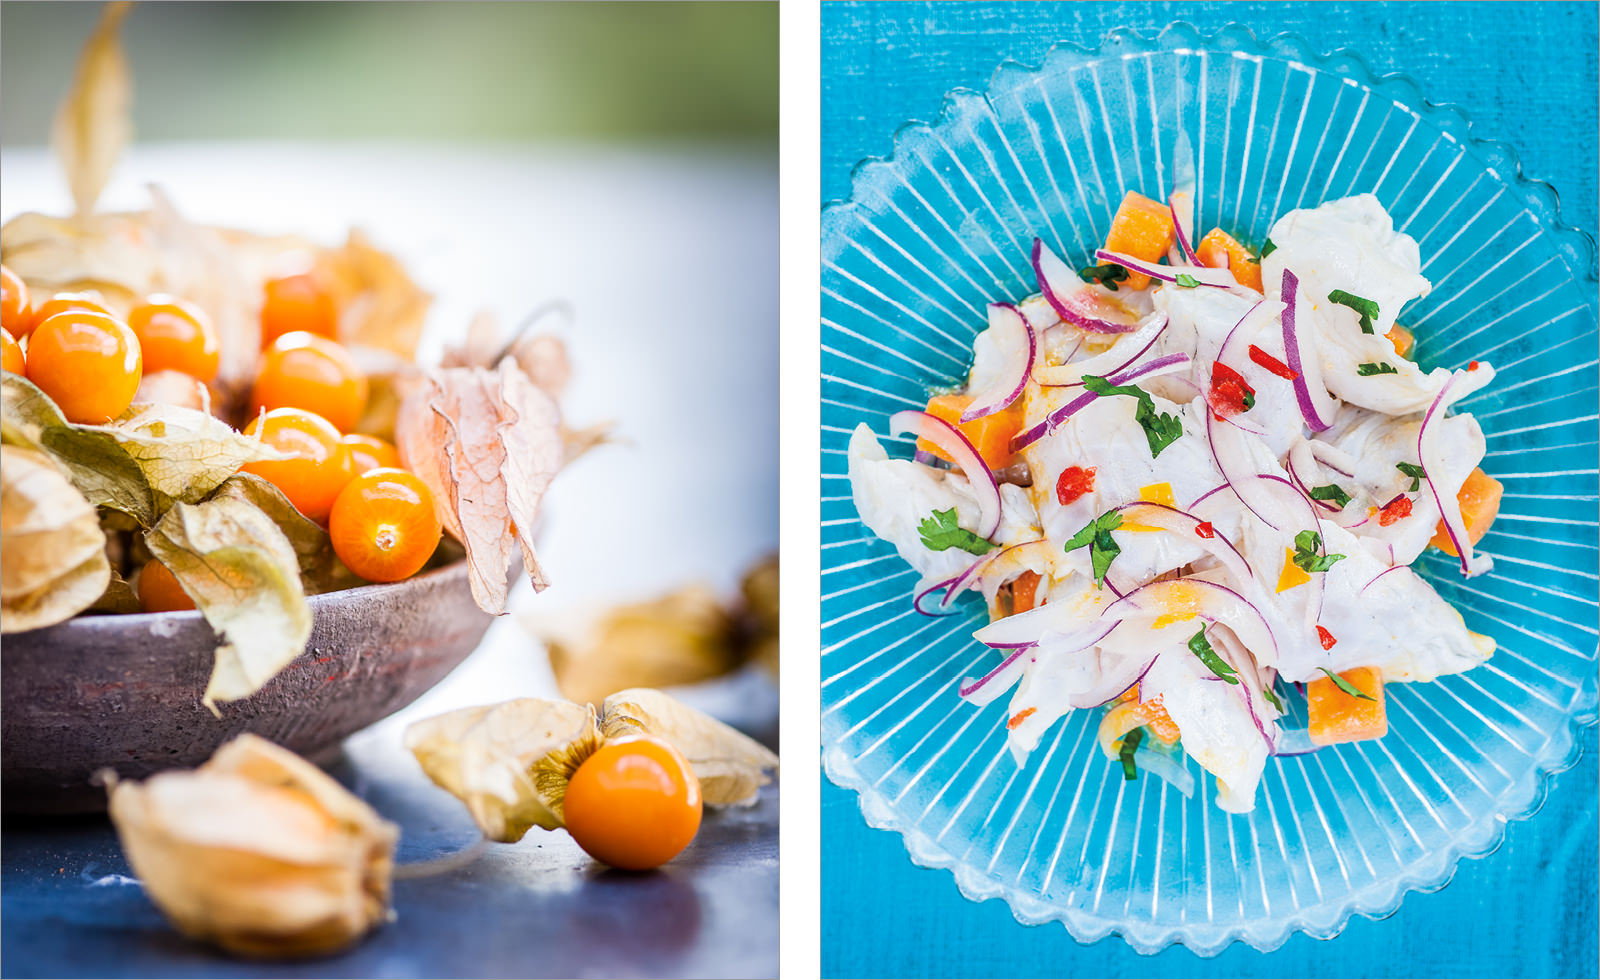 Ceviche - Peruvian Kitchen - Books | Published Work photographer pwf